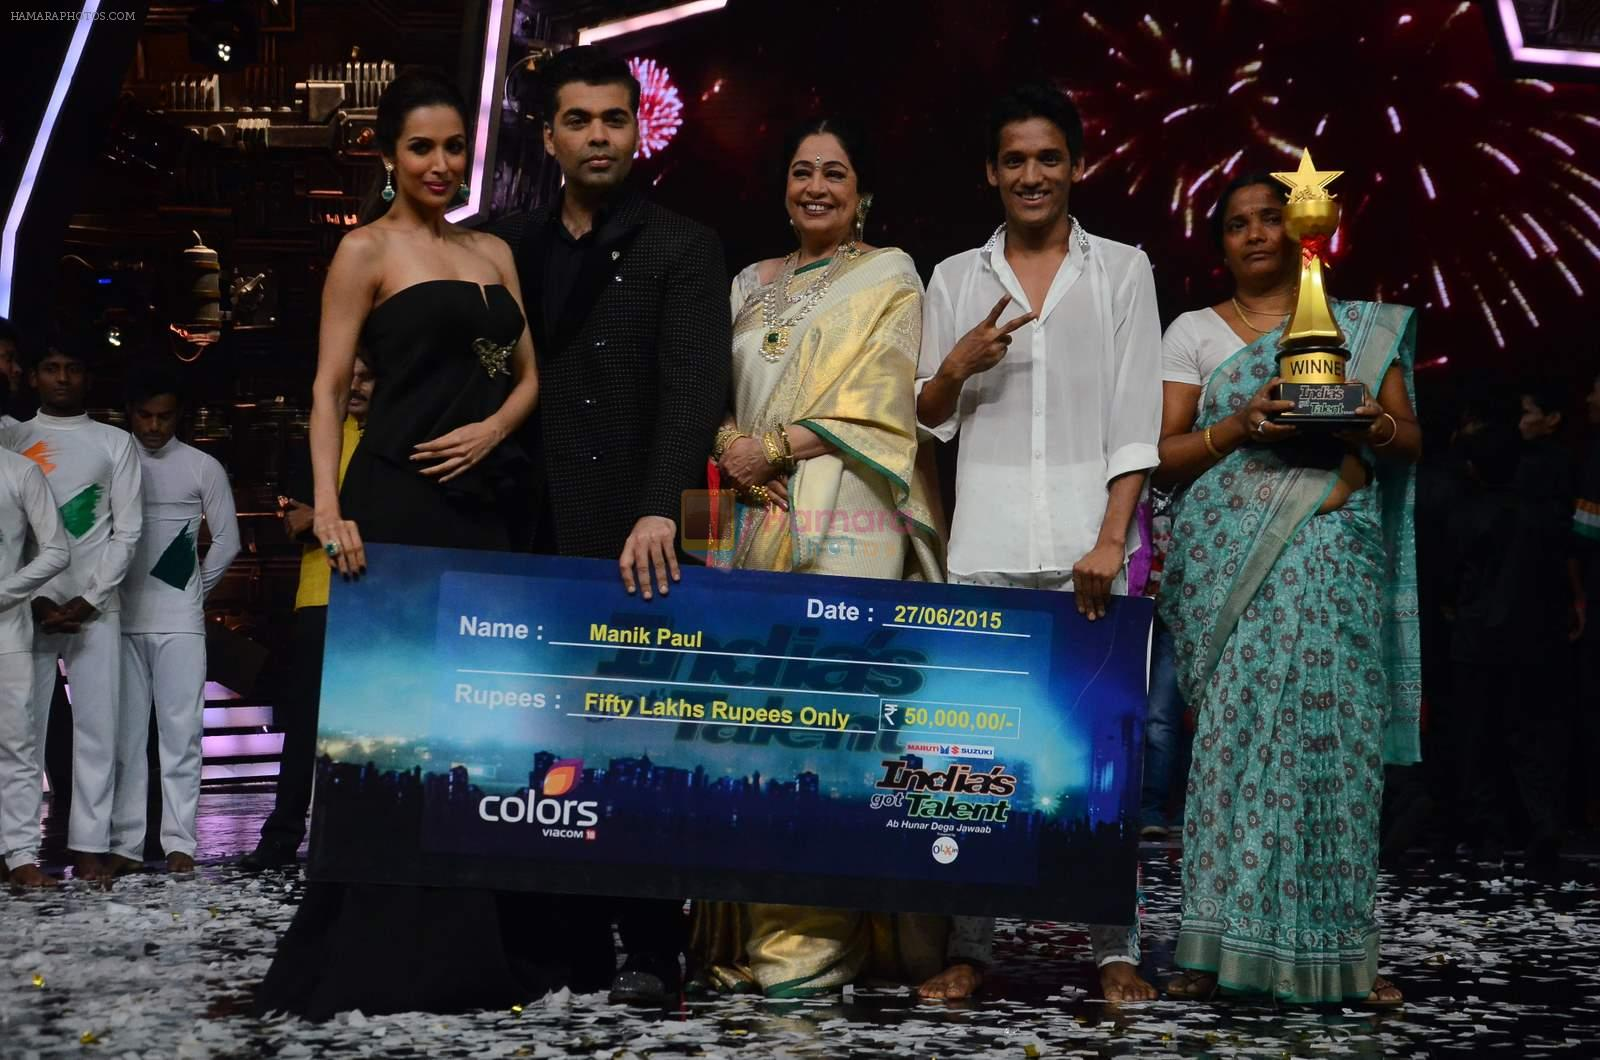 Kiron Kher, Karan Johar, Malaika Arora Khan at IGT grand finale in Filmcity, Mumbai on 27th June 2015